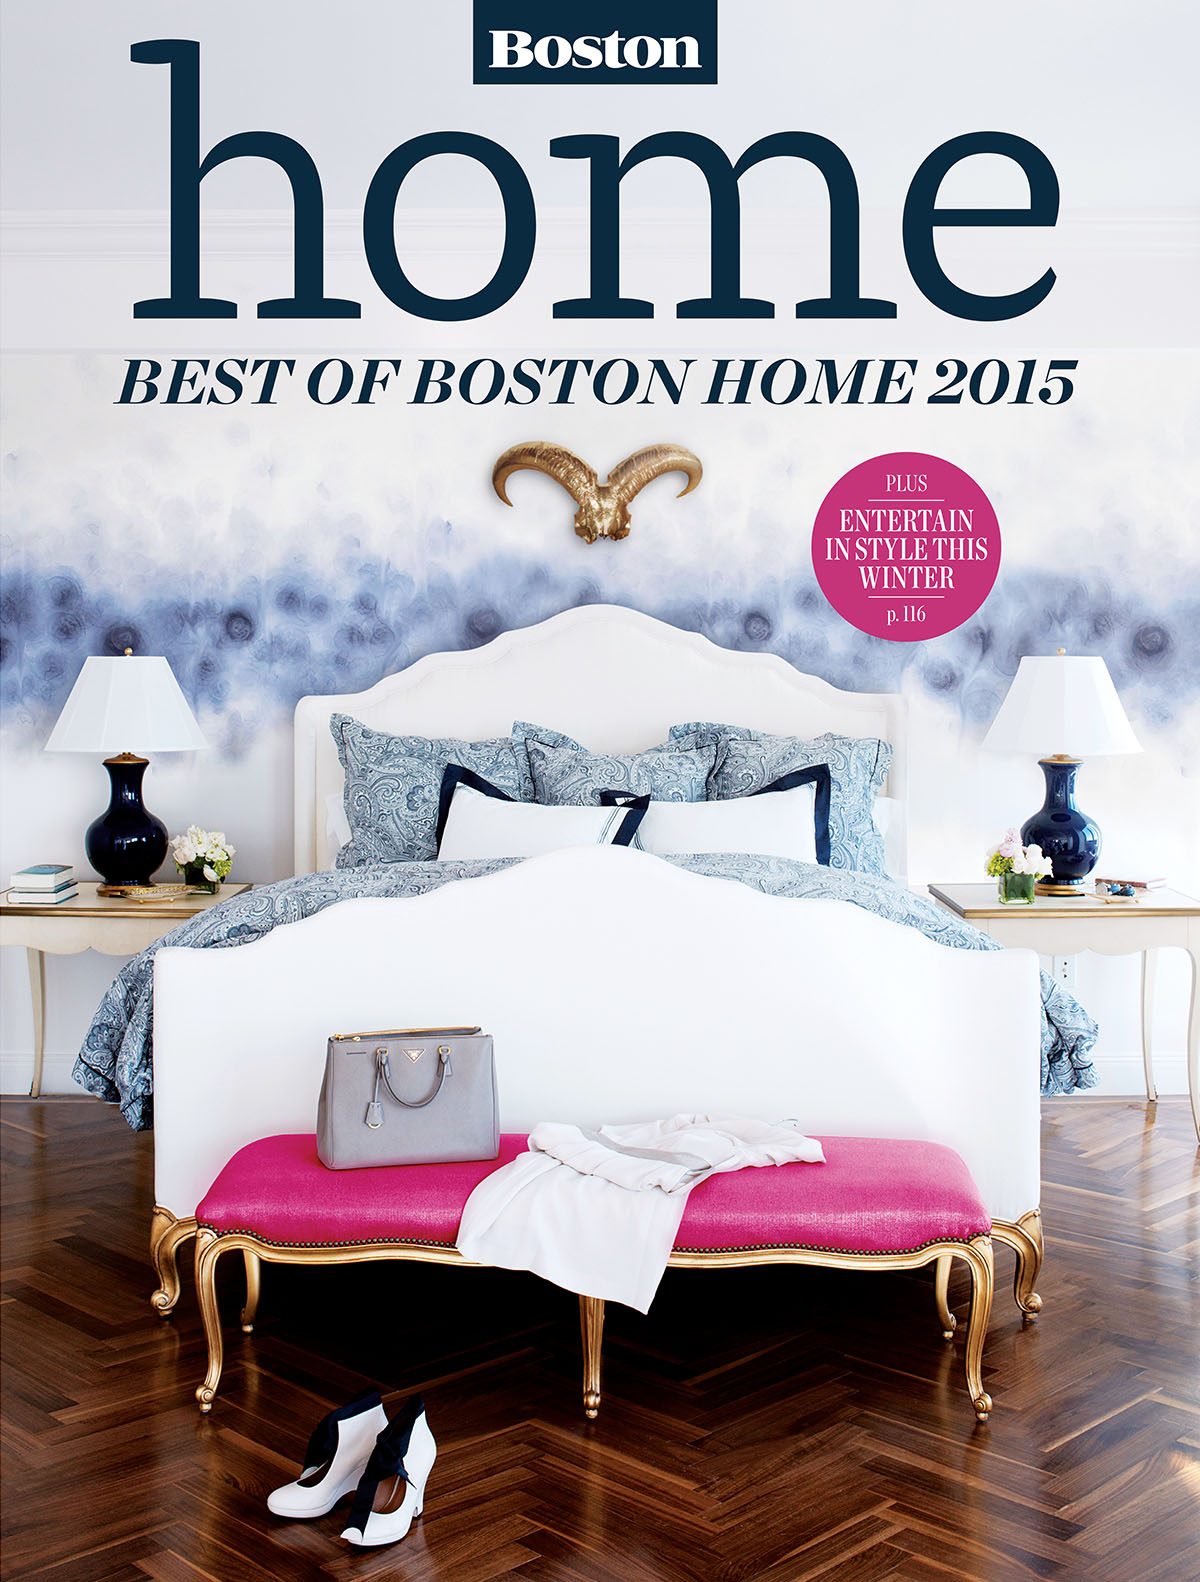 best of boston home 2015 - Large Home 2015